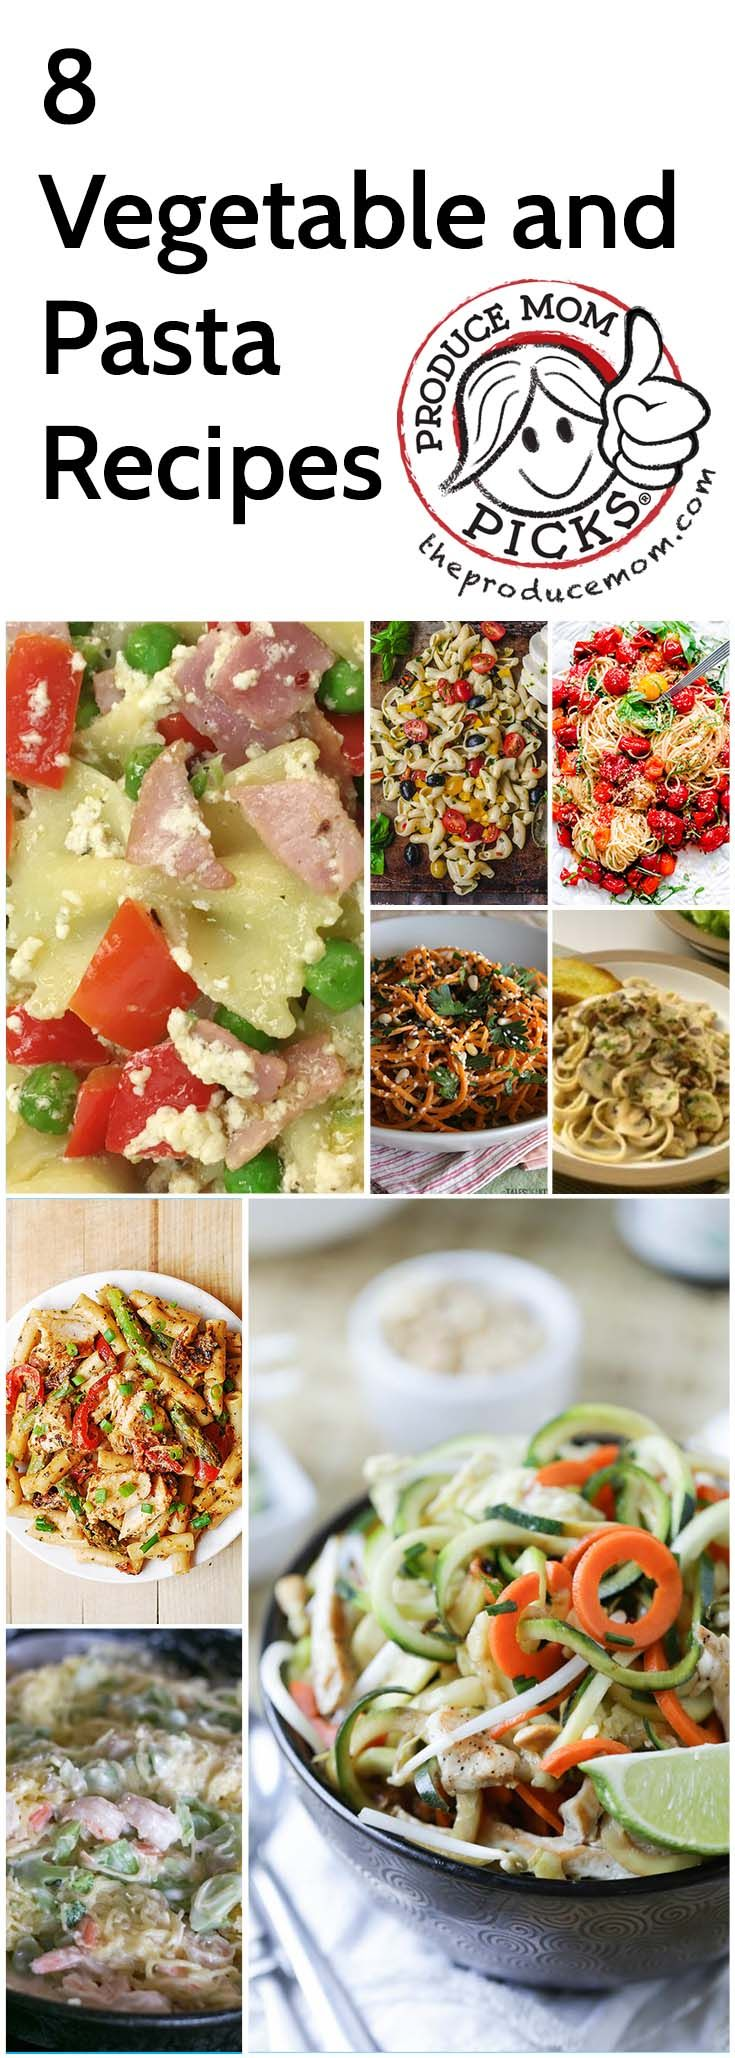 Vegetable and Pasta Recipes from The Produce Mom